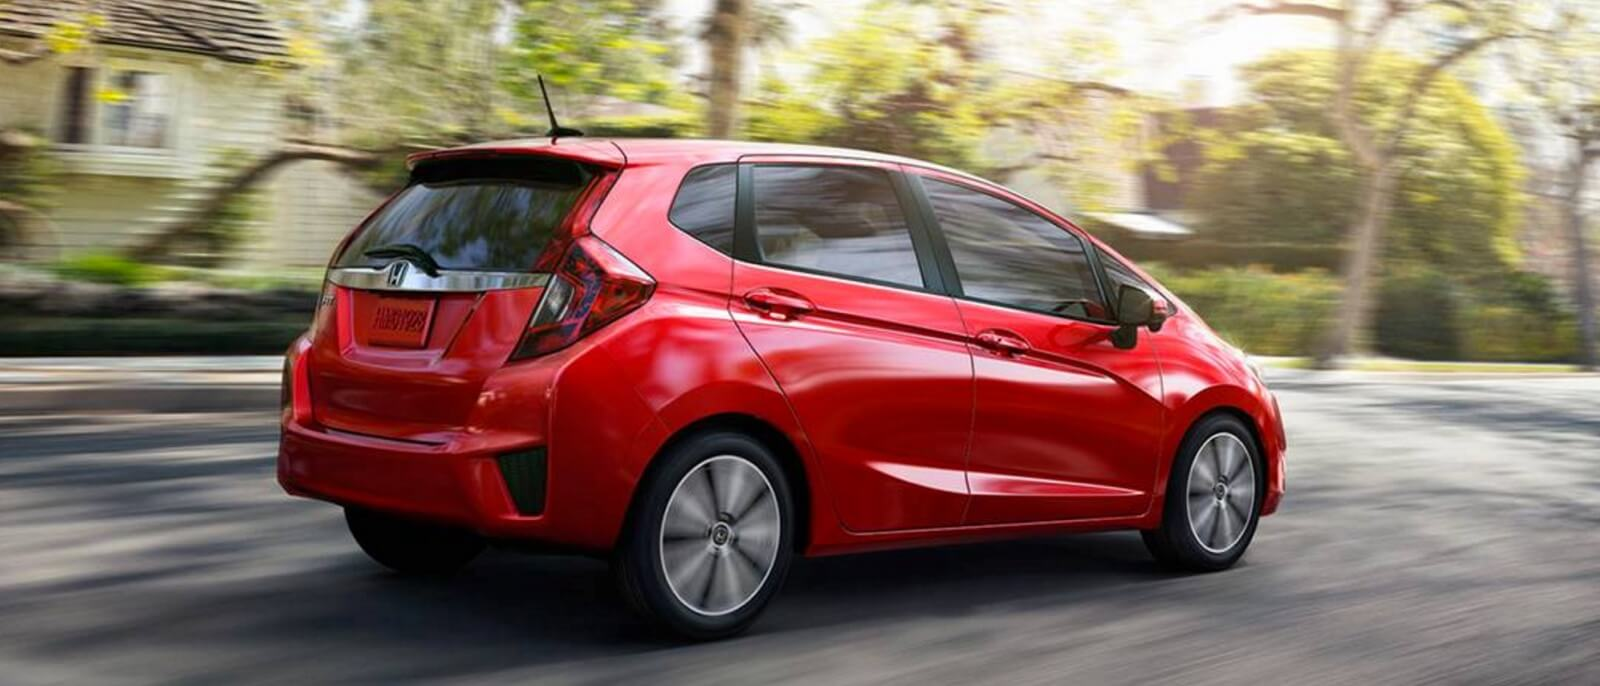 2016 Honda Fit in red side view